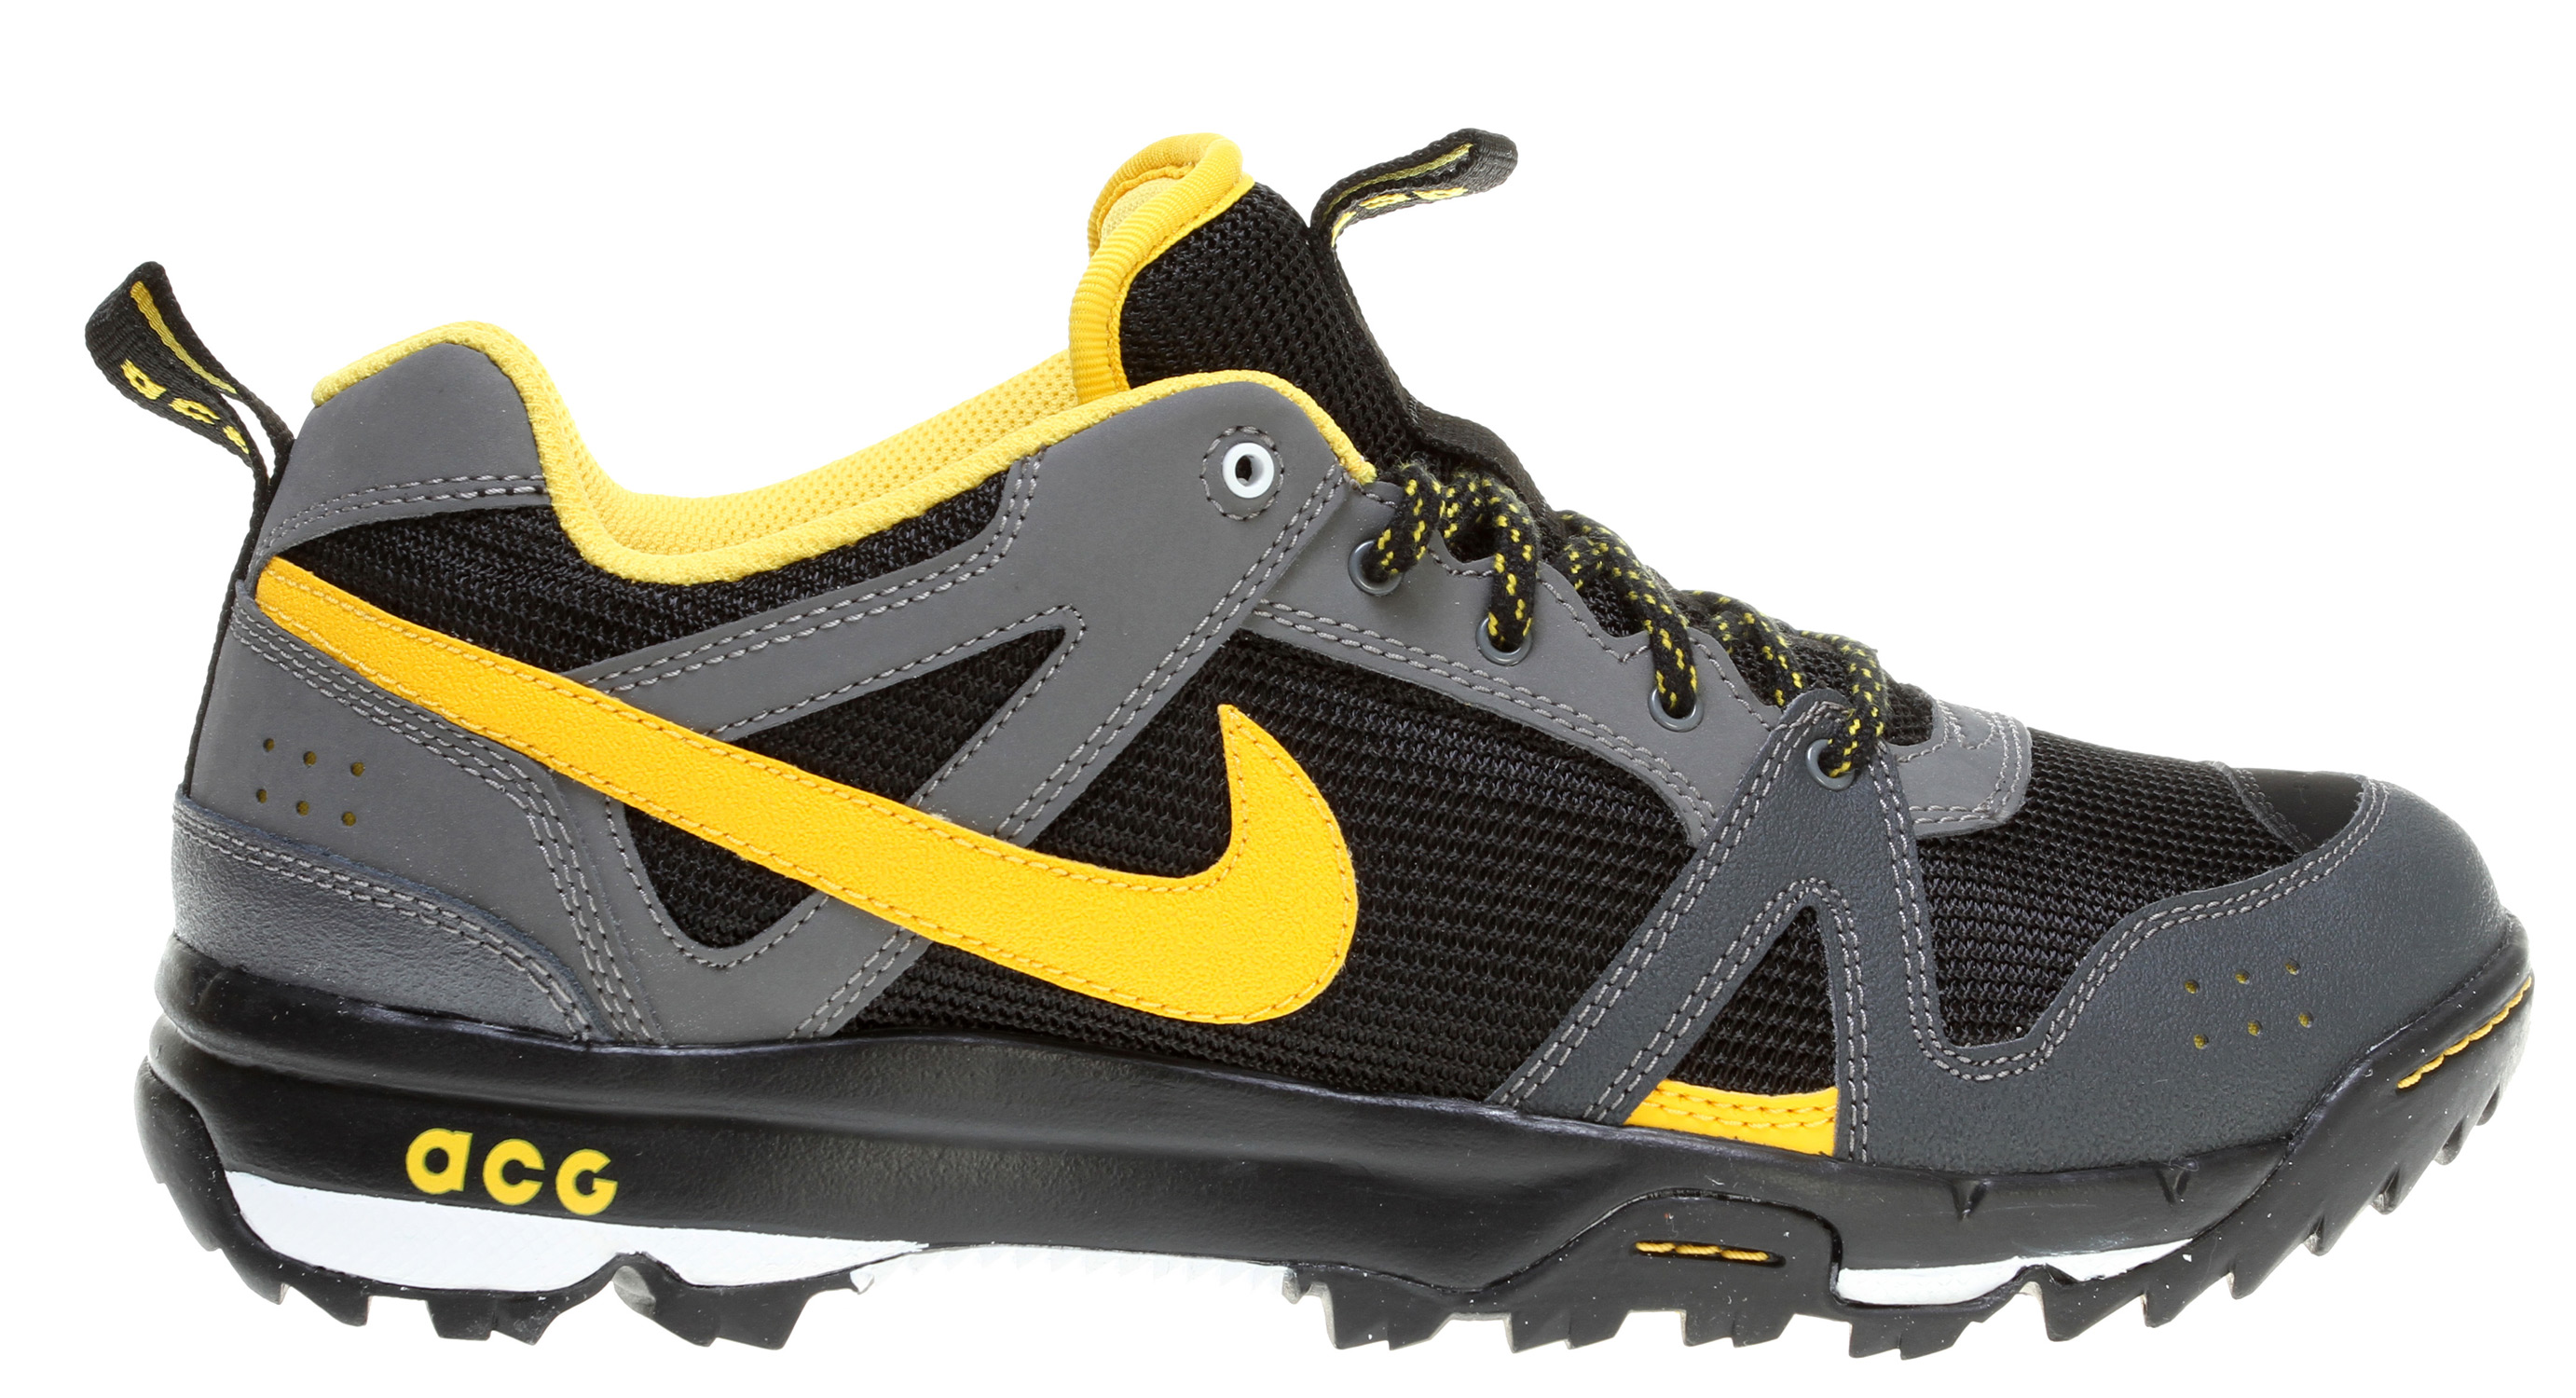 848a5d9ad Nike Hiking Shoes - Style Guru  Fashion